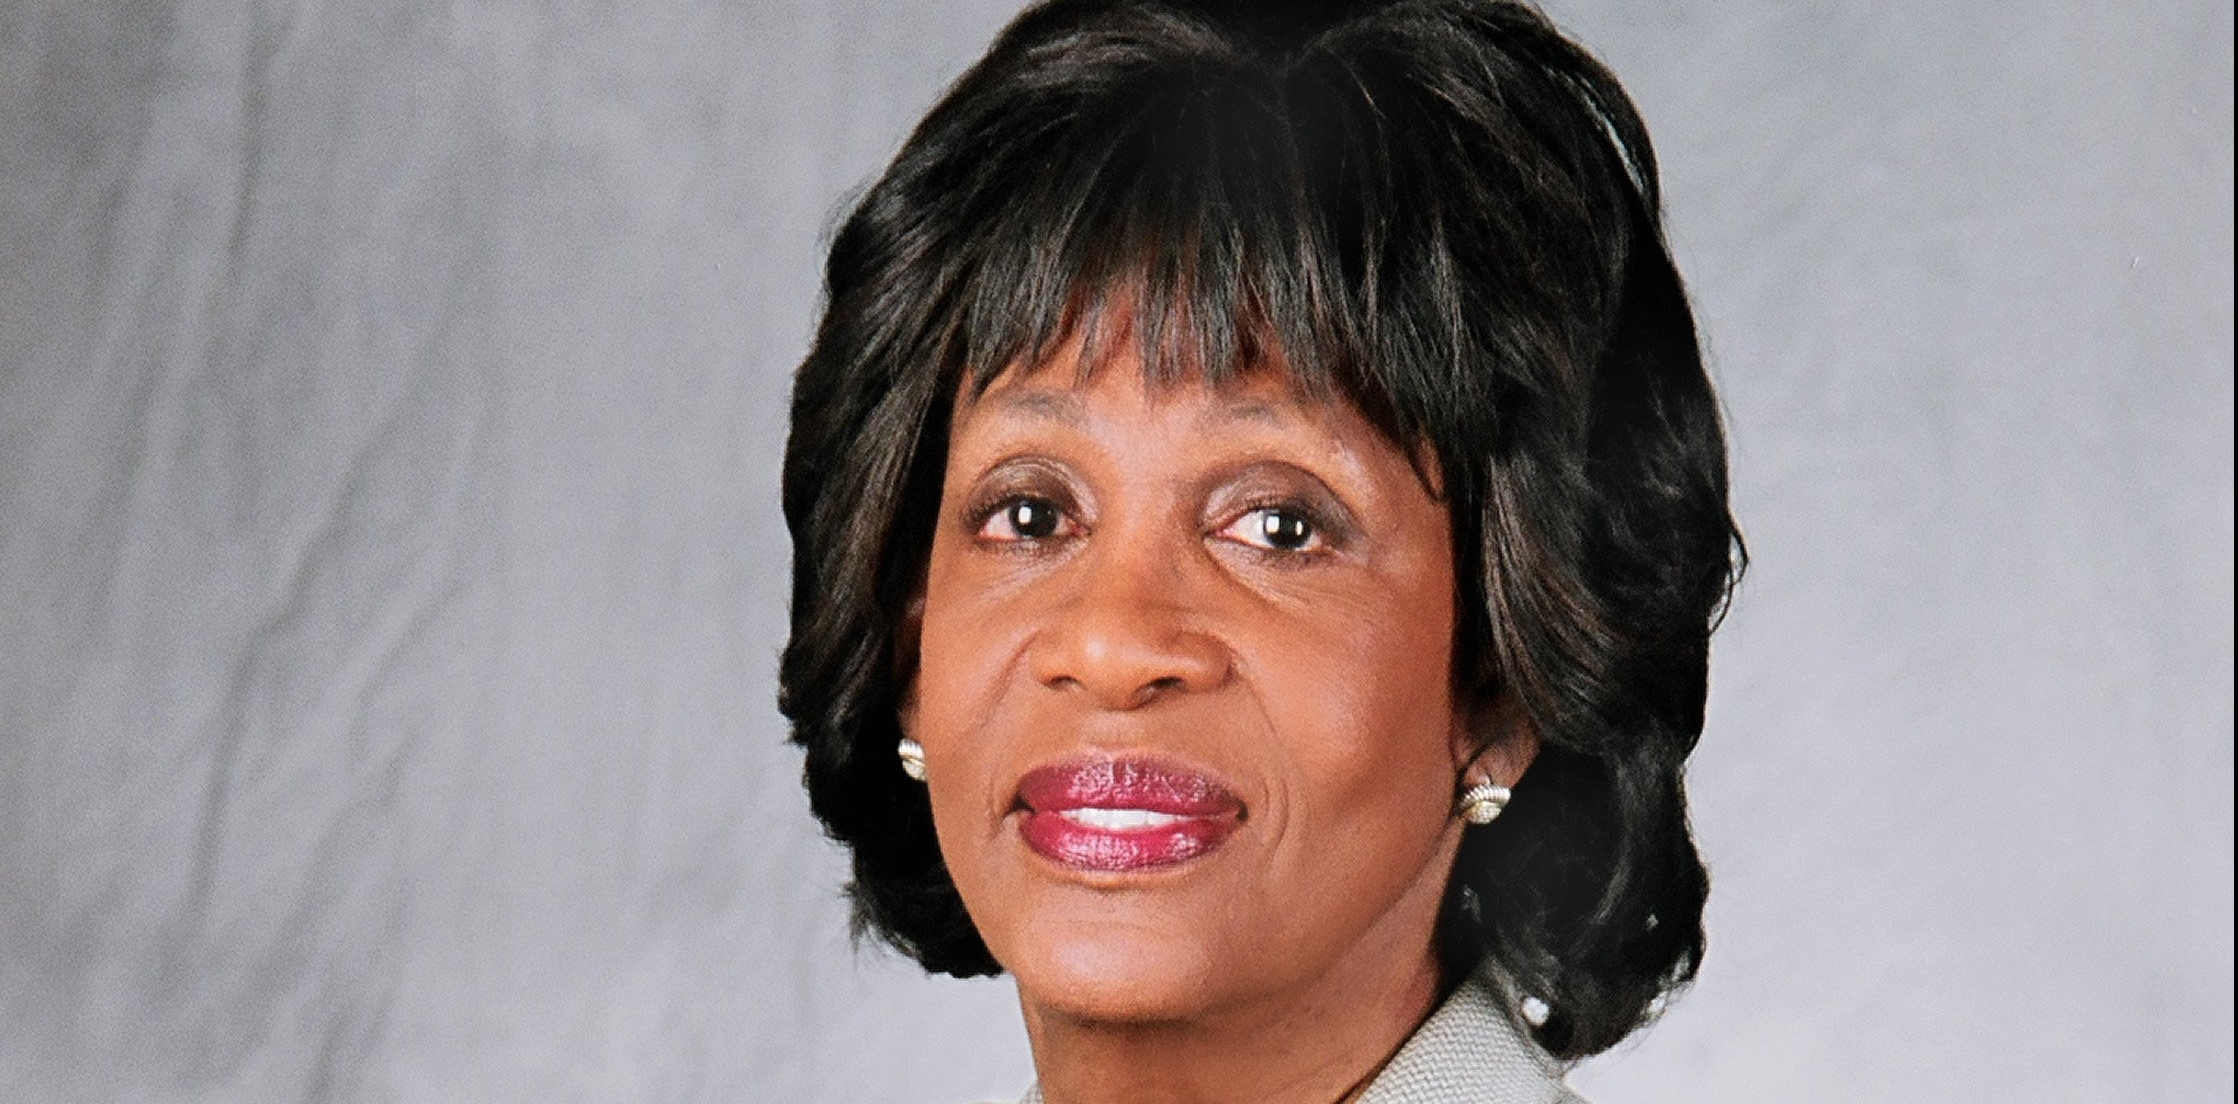 Rick Roberts: Why is Maxine Waters Still Pushing for Impeachment?